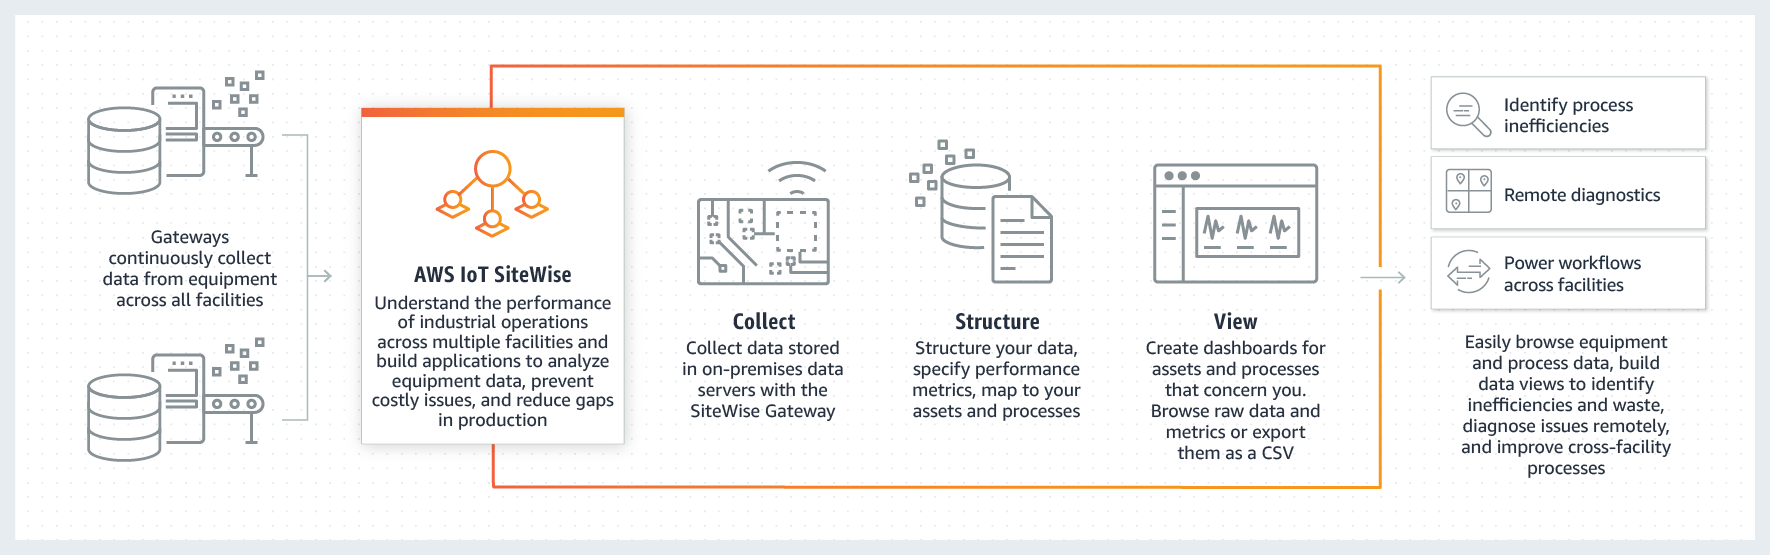 AWS IoT SiteWise How It Works